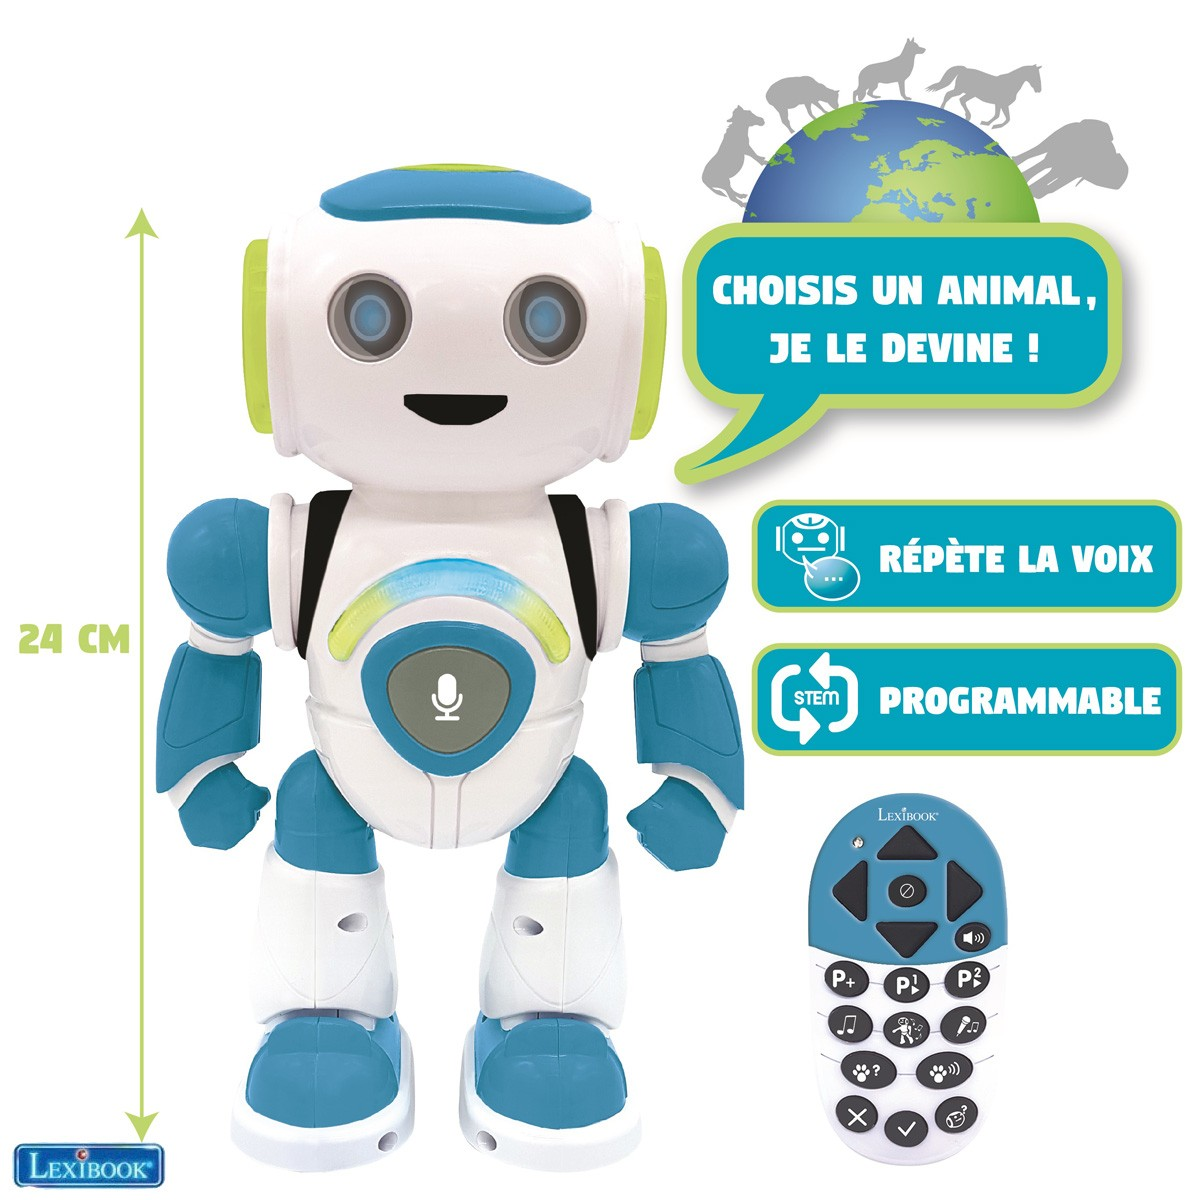 Robot programmable POWERMAN® JR.